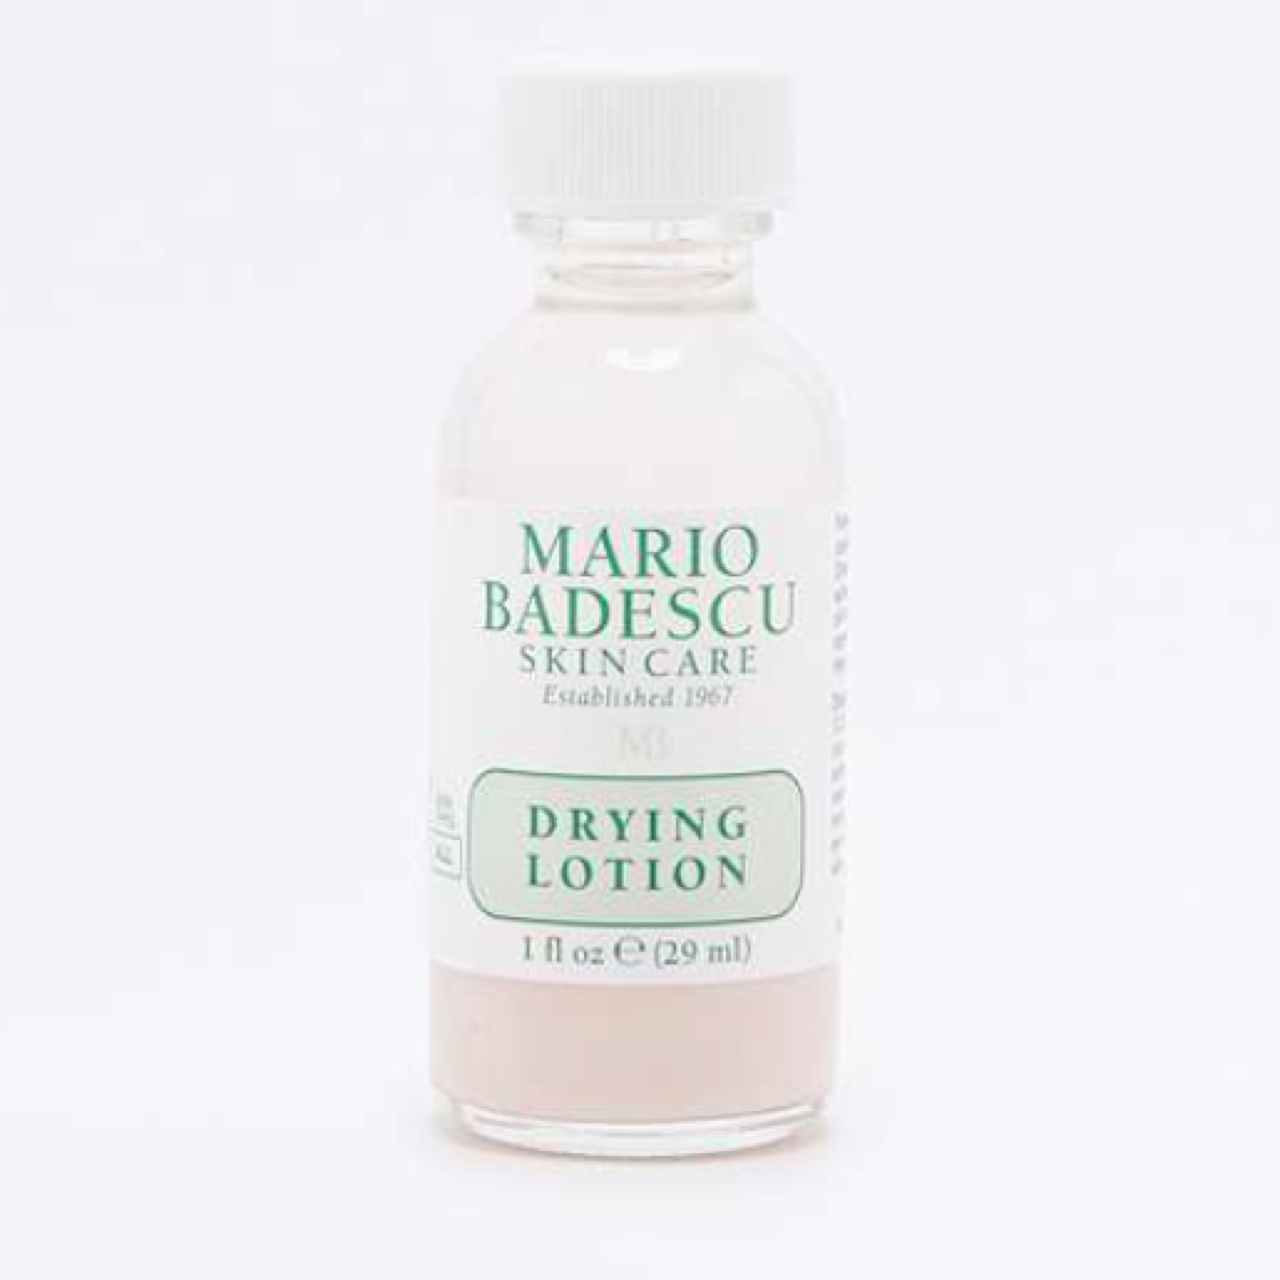 Mario Badescu Drying Lotion Never Been Opened As I Depop